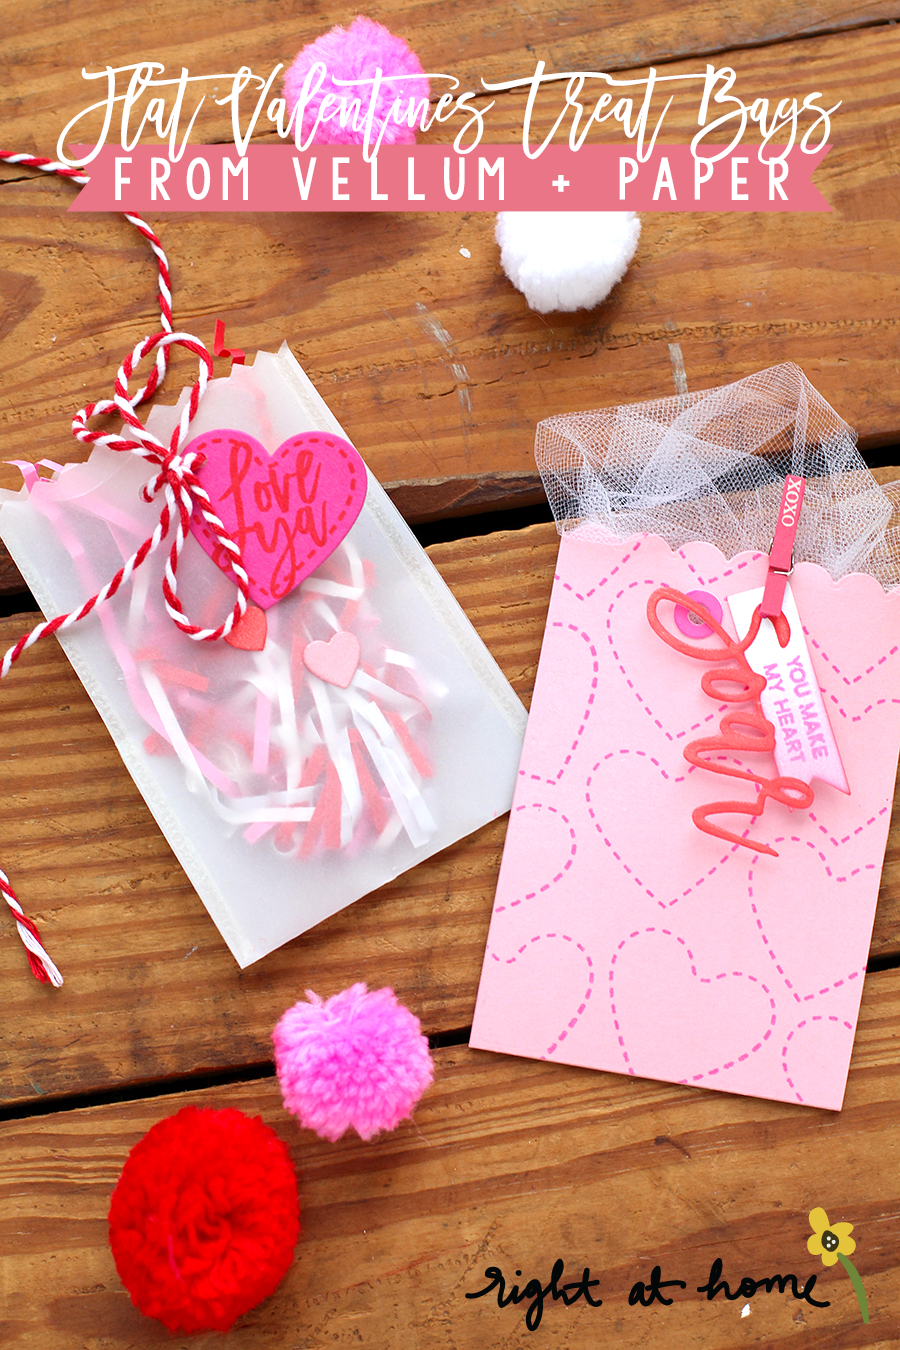 Day #8: Flat Vellum + Paper Valentines Treat Bags // rightathomeshop.com/blog